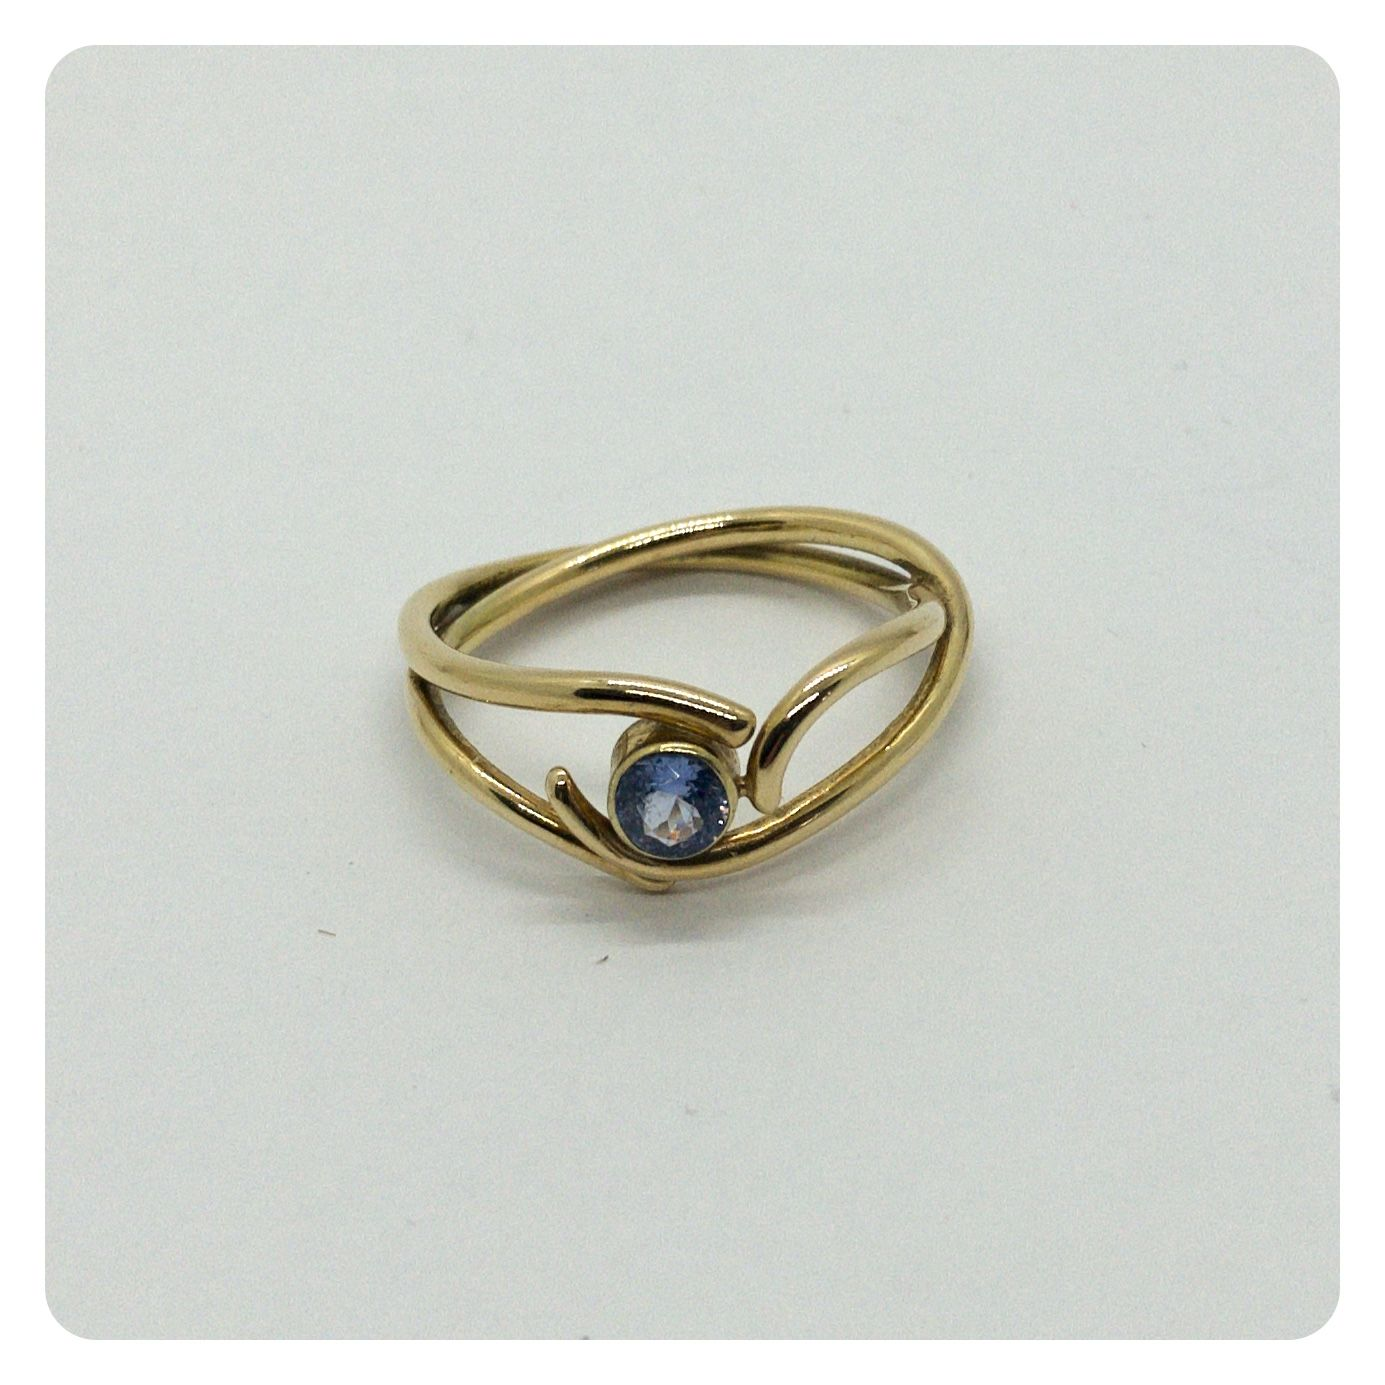 Golden Ring With Saphire In 2020 Gold Necklace Price Golden Ring Gold Cost